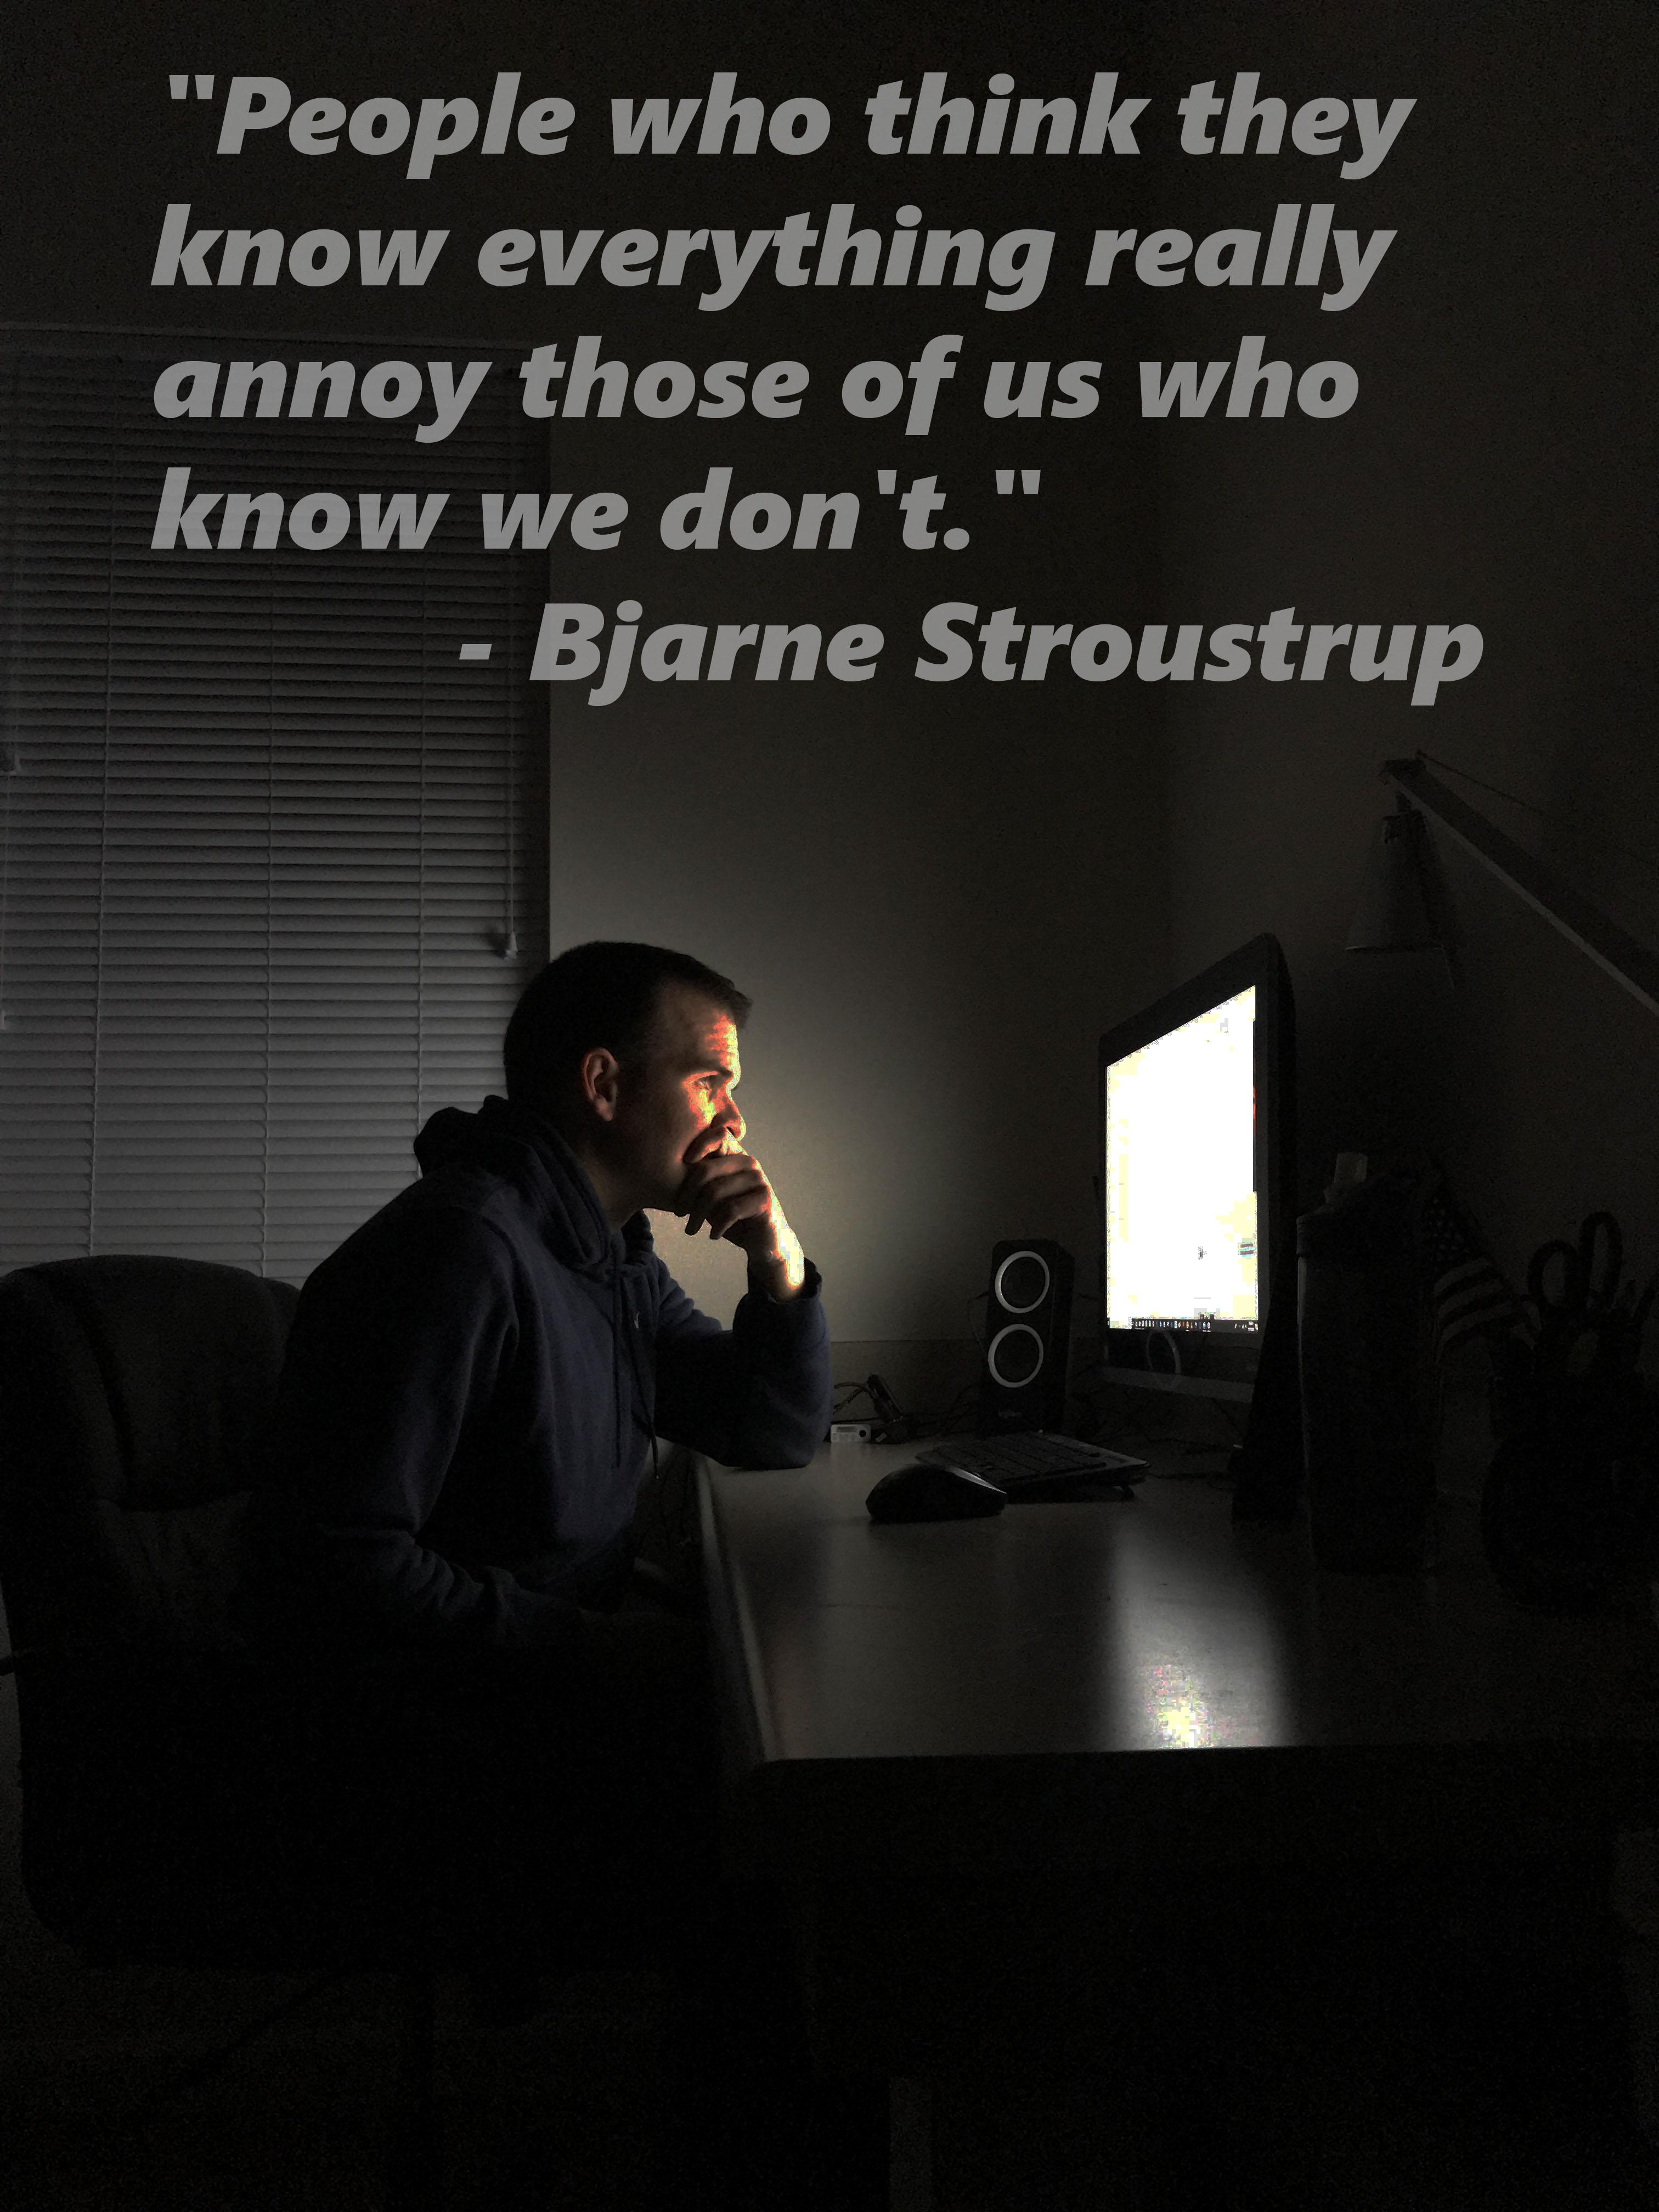 """People who think they know everything really annoy those of us who know we don't."" – Bjarne Stroustrup [3024×4032] [OC]"